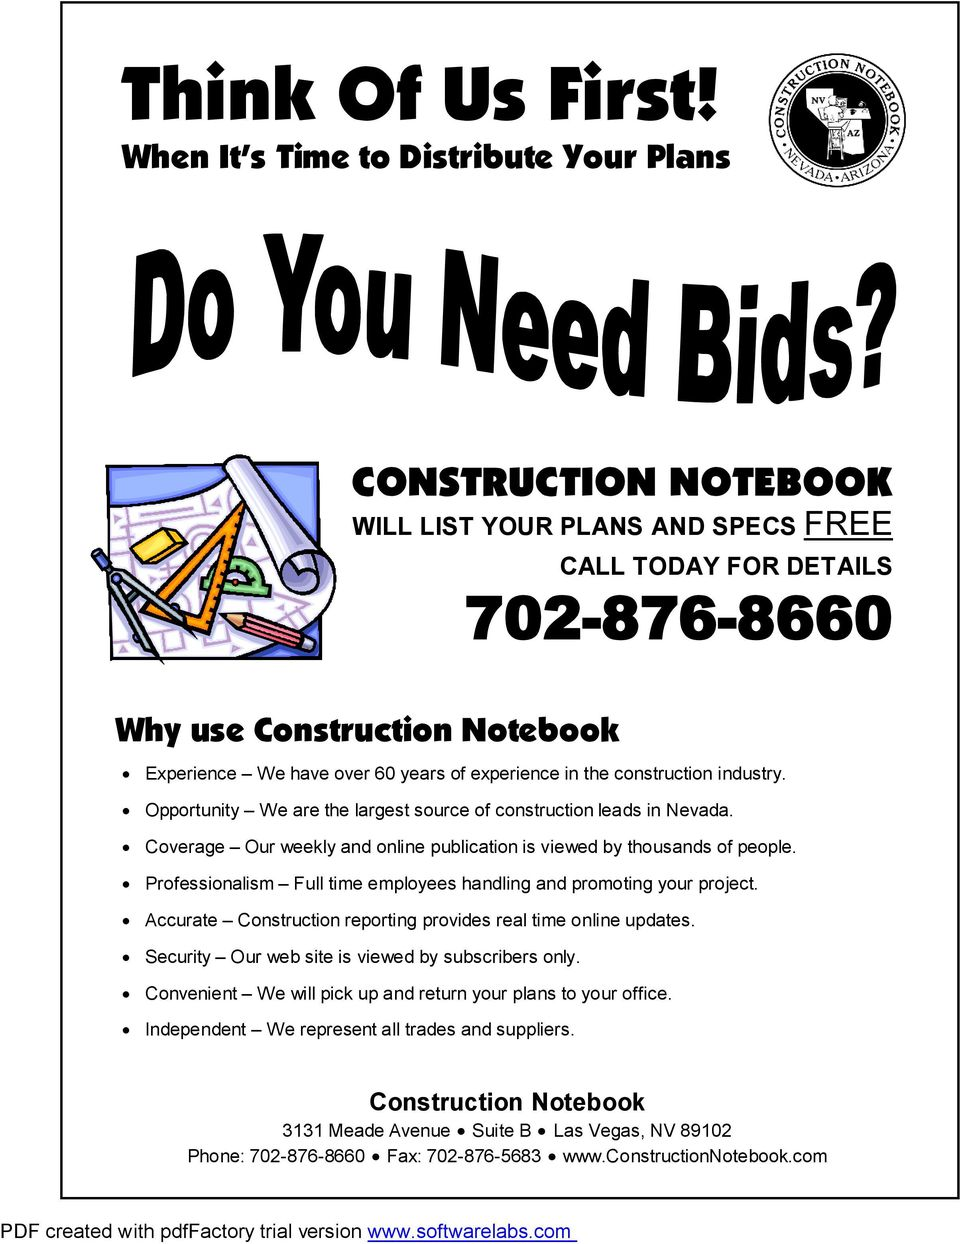 construction industry. Opportunity We are the largest source of construction leads in Nevada. Coverage Our weekly and online publication is viewed by thousands of people.